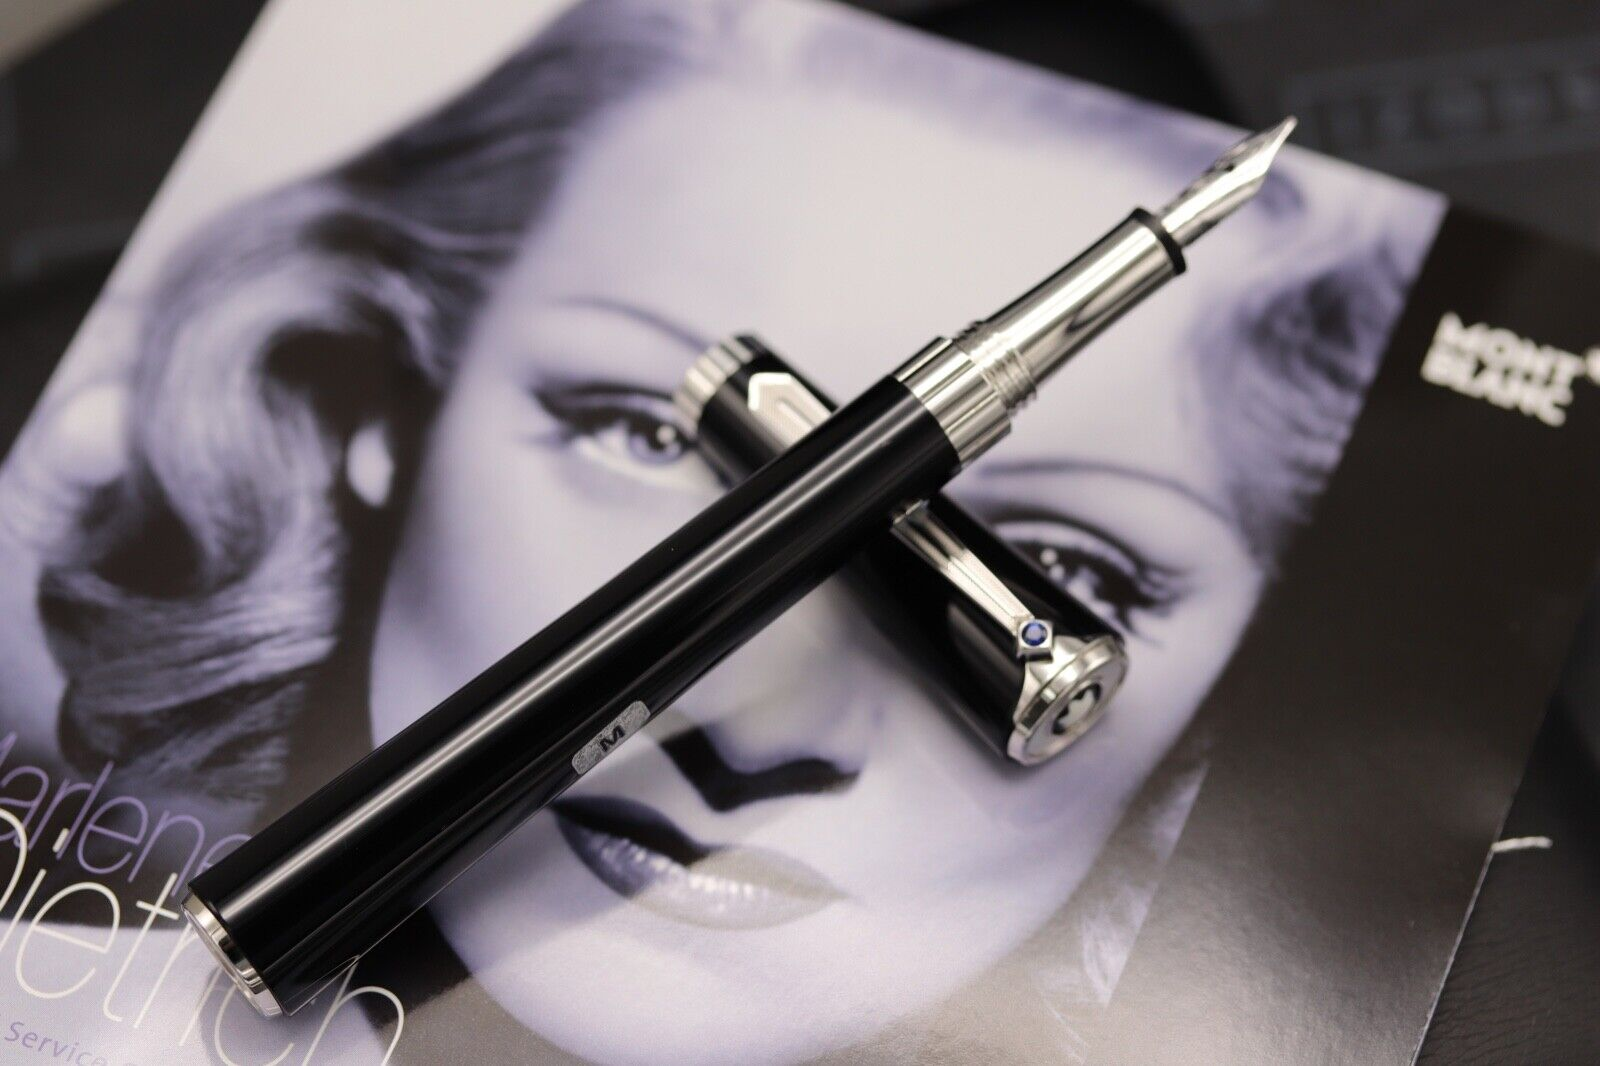 Montblanc Diva Line Marlene Dietrich Special Edition Fountain Pen - NEW MARCH 21 1